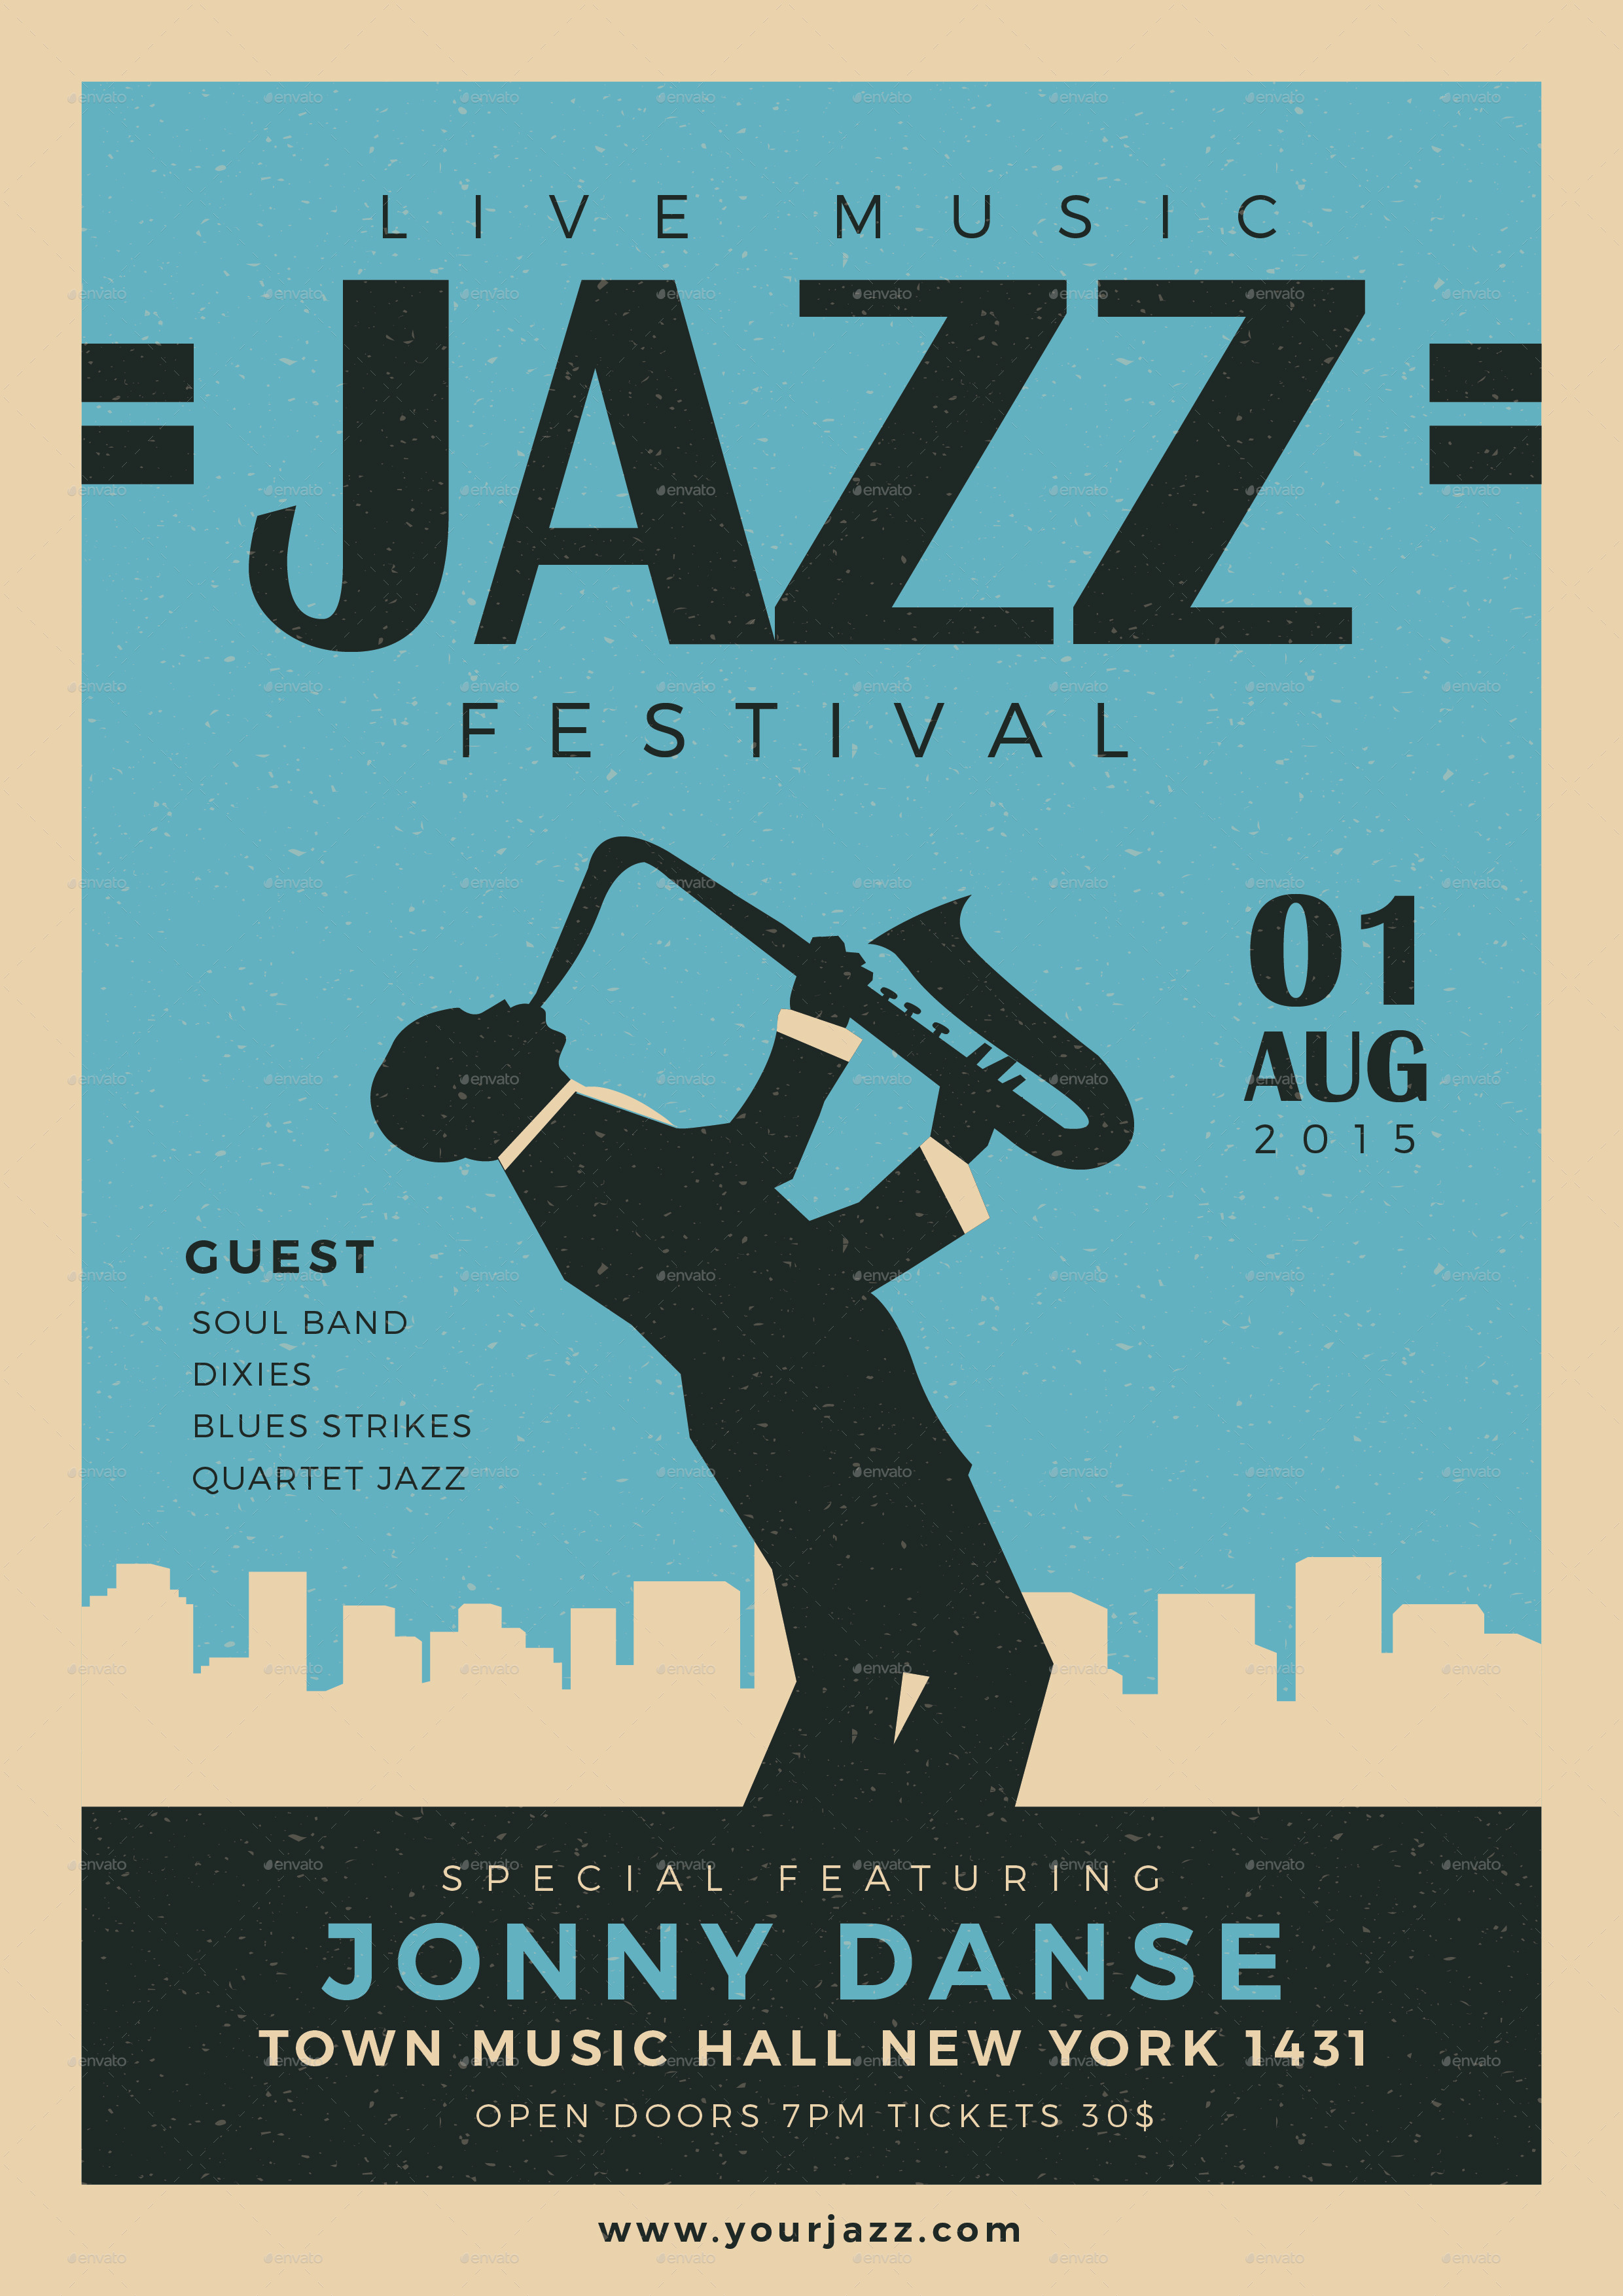 Old Jazz Festival Flyer by Guuver | GraphicRiver